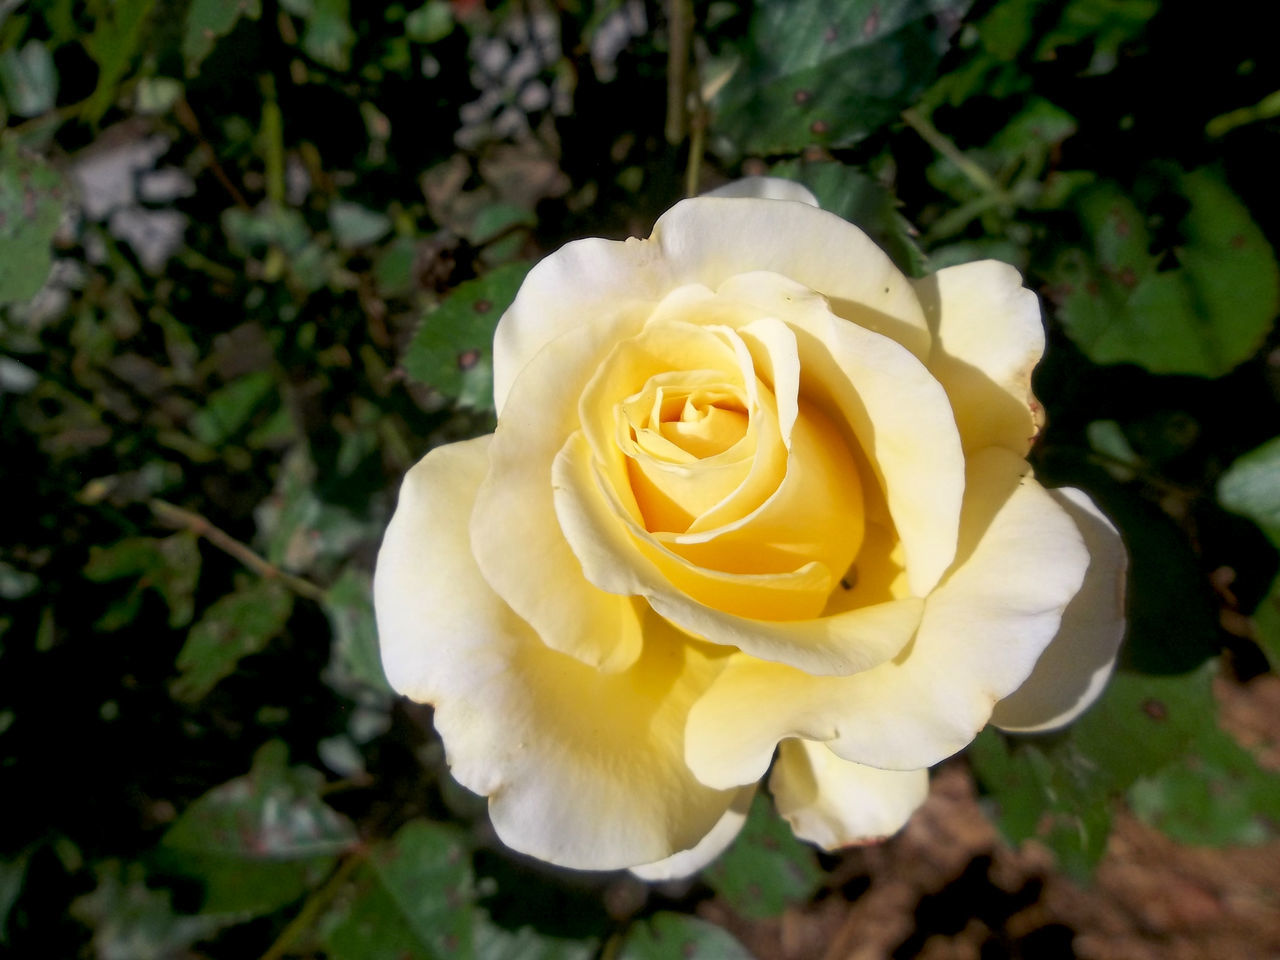 Yellow Flower Yellow Rose Yellow Roses Roses Roses_collection Nature Beauty In Nature Beauty Of Nature Yellow Flowers,Plants & Garden Flowers_collection Rose - Flower